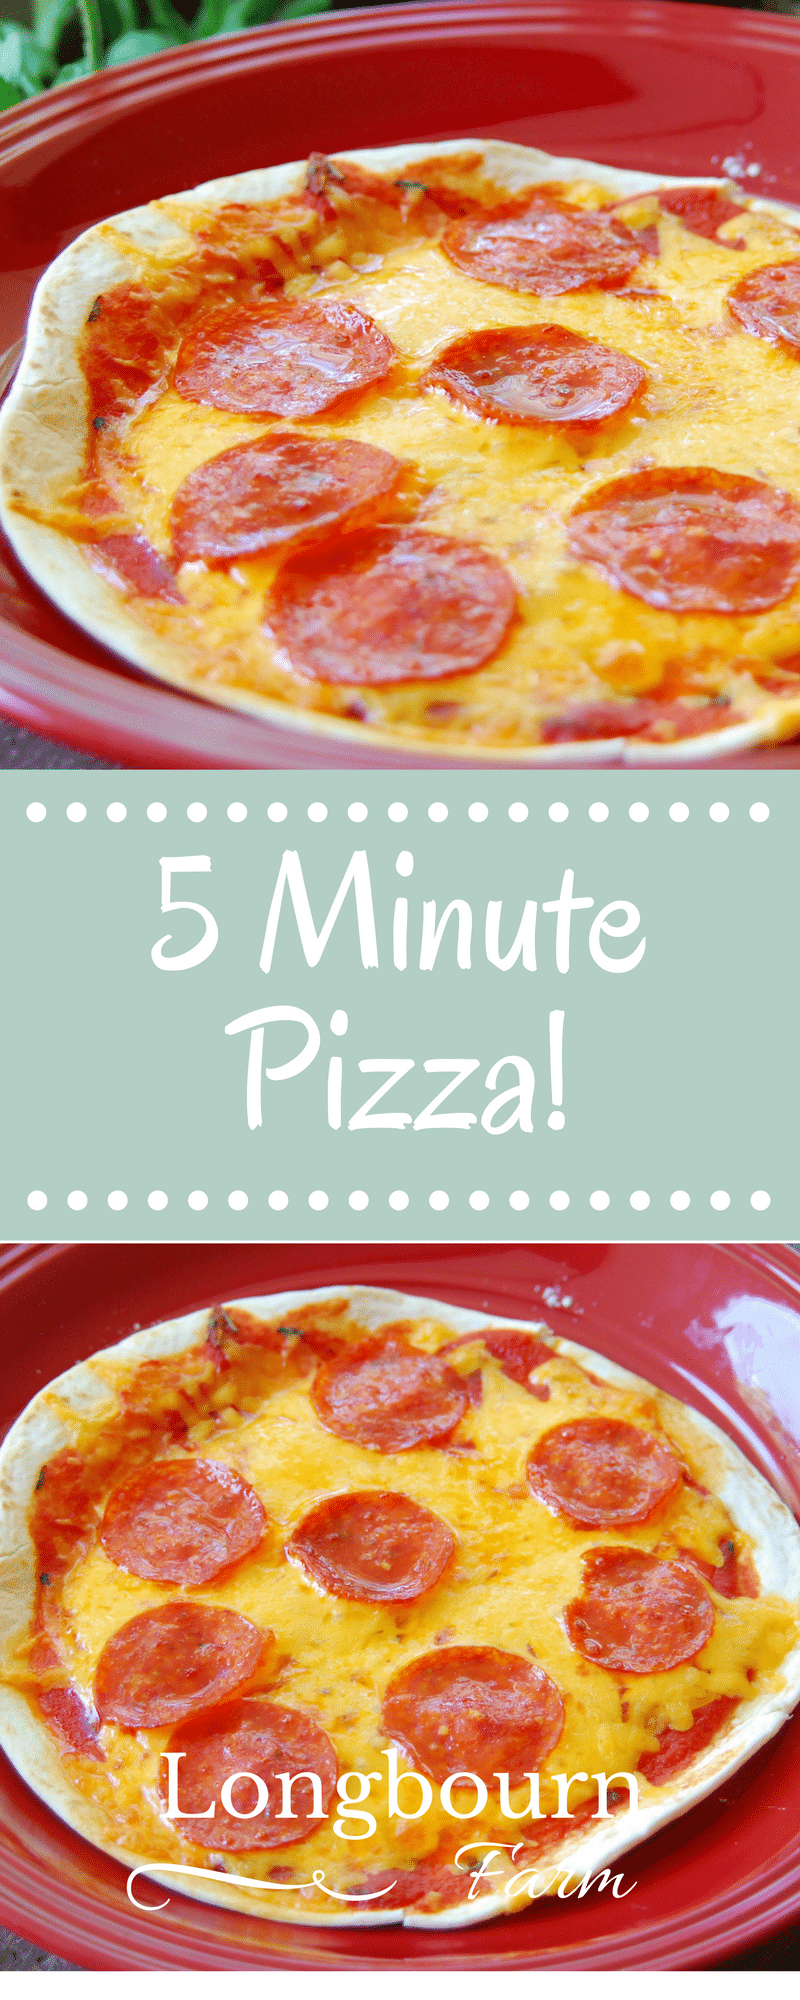 Looking for a quick weeknight meal, or a fast lunch? This 5 minute pizza will hit the spot. Easy, delicious, and a fast recipe!